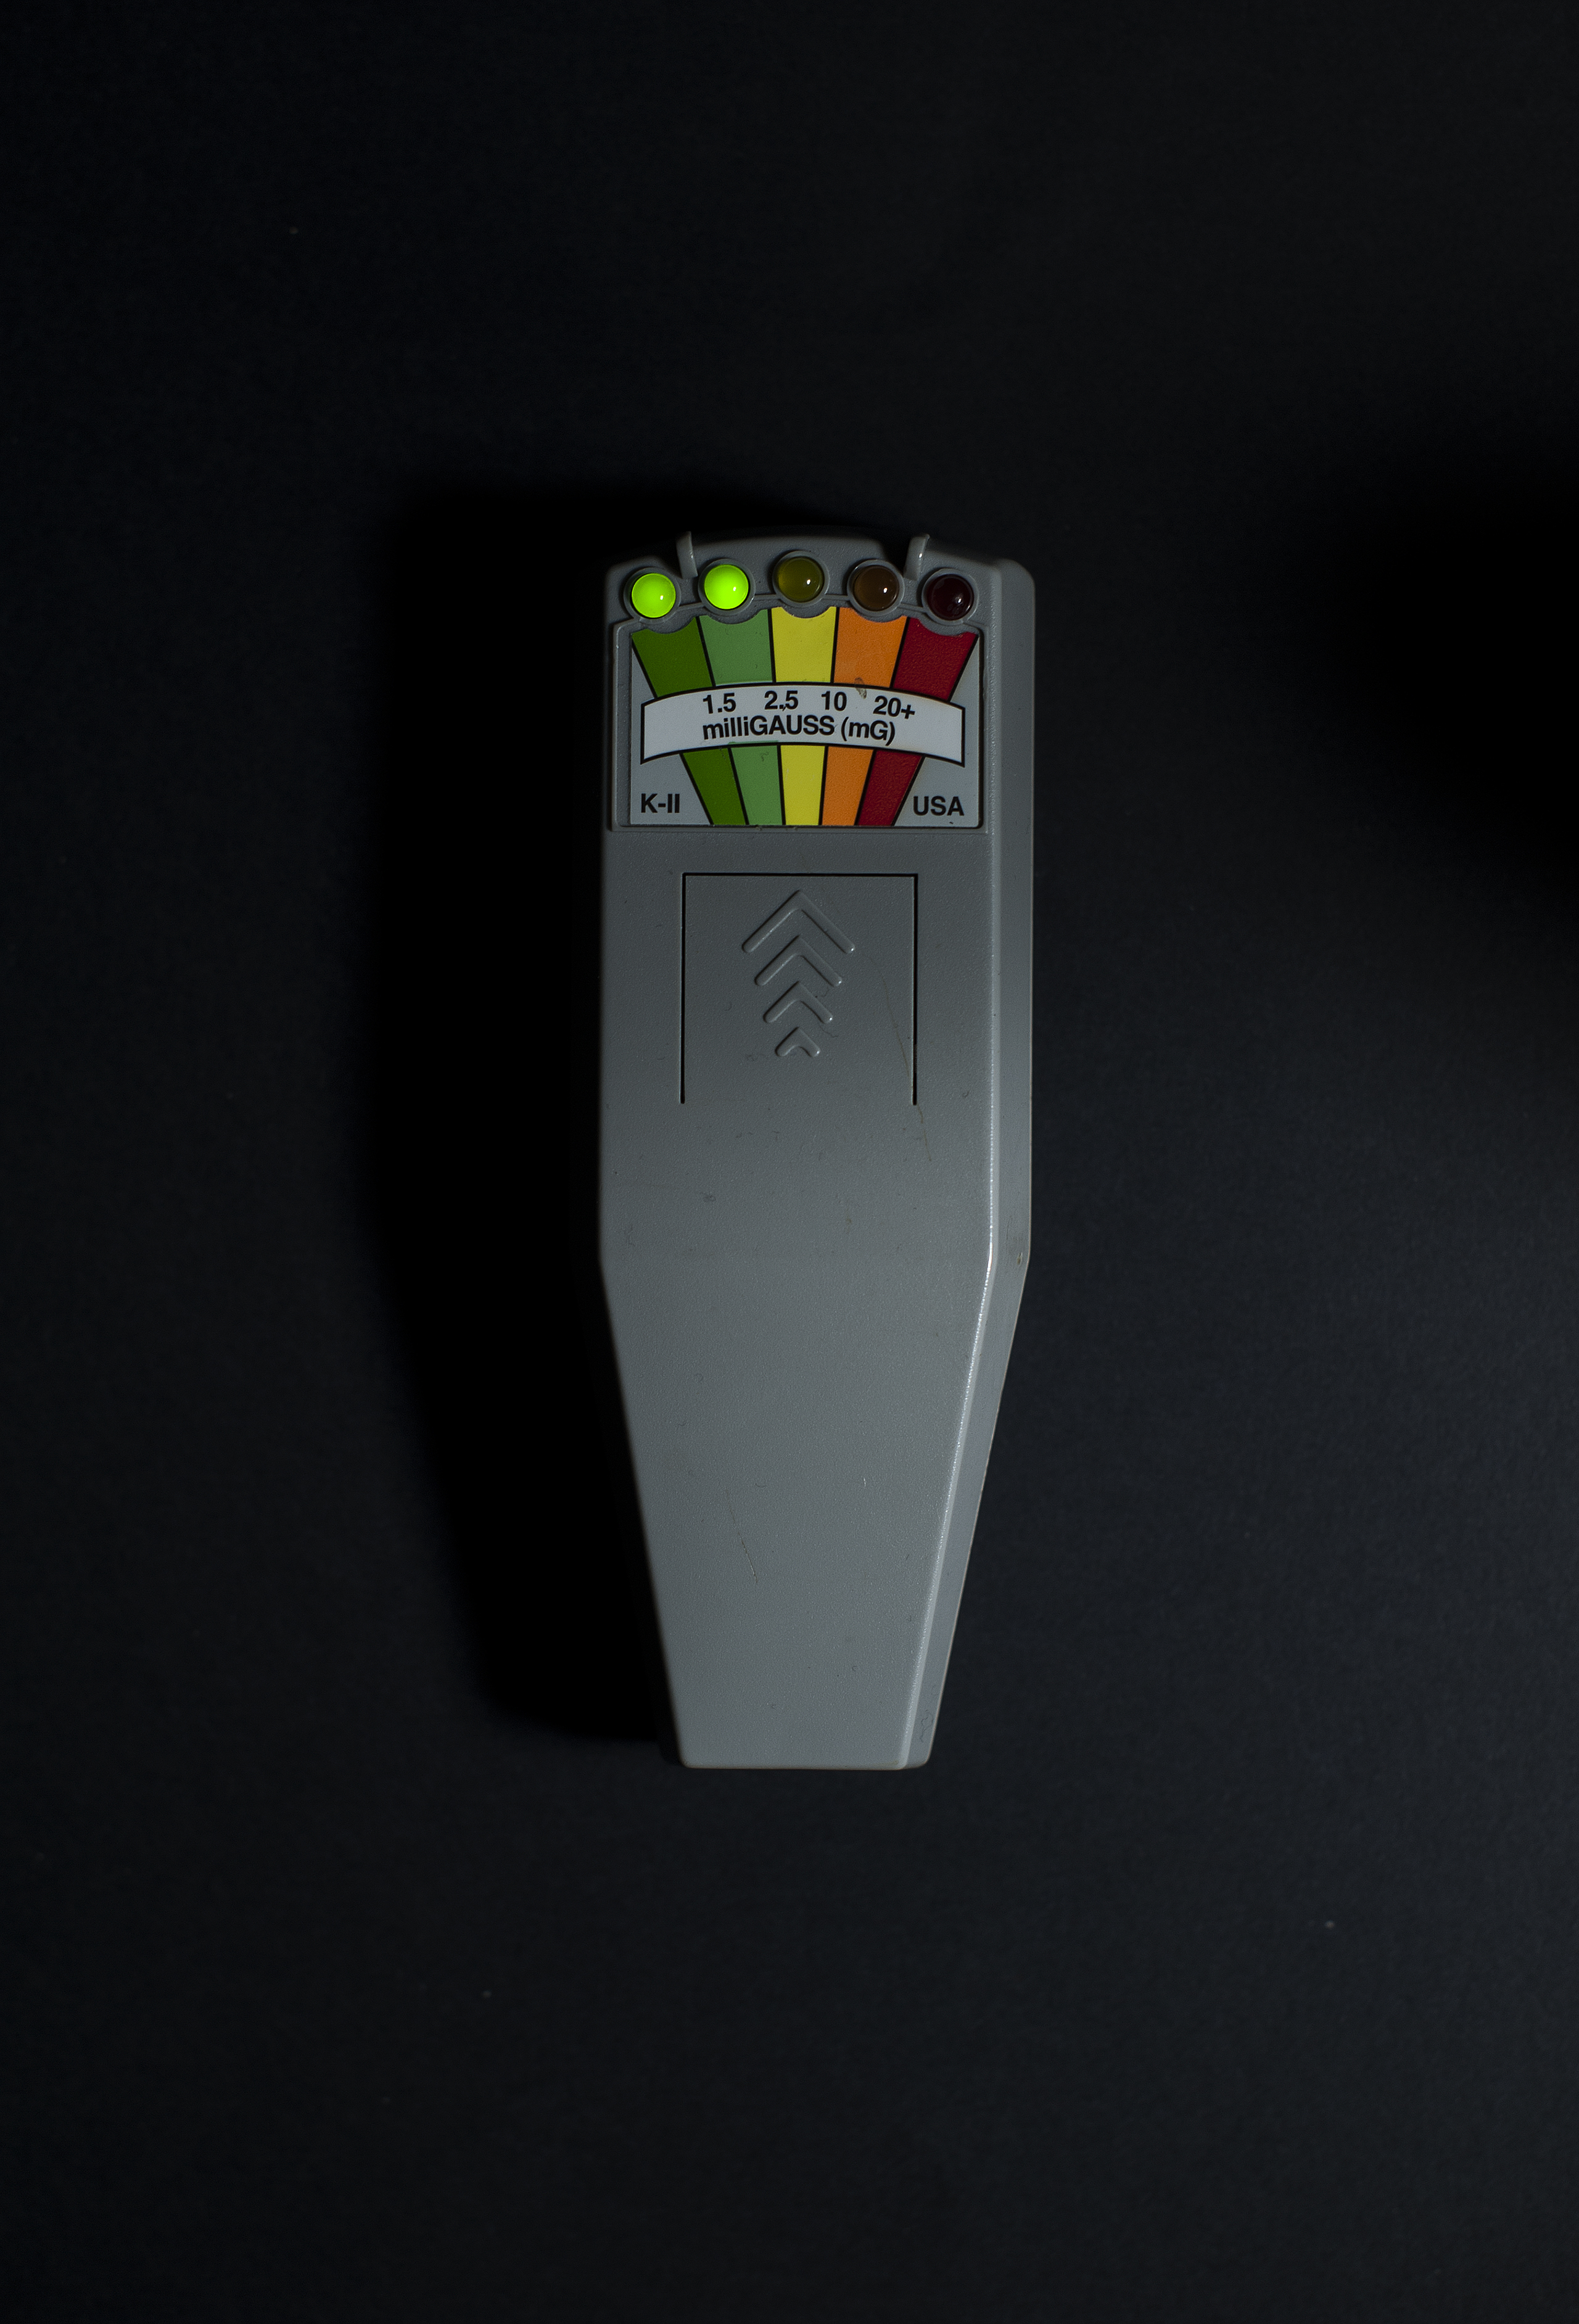 The K2 meter is a popular, easy-to-use tool to detect spikes in electromagnetic energy. These spikes are indicated by the multicolor lights at the top of the meter, which may signify activity or communication from spirits from the other side. It's widely used by professional ghost hunters.